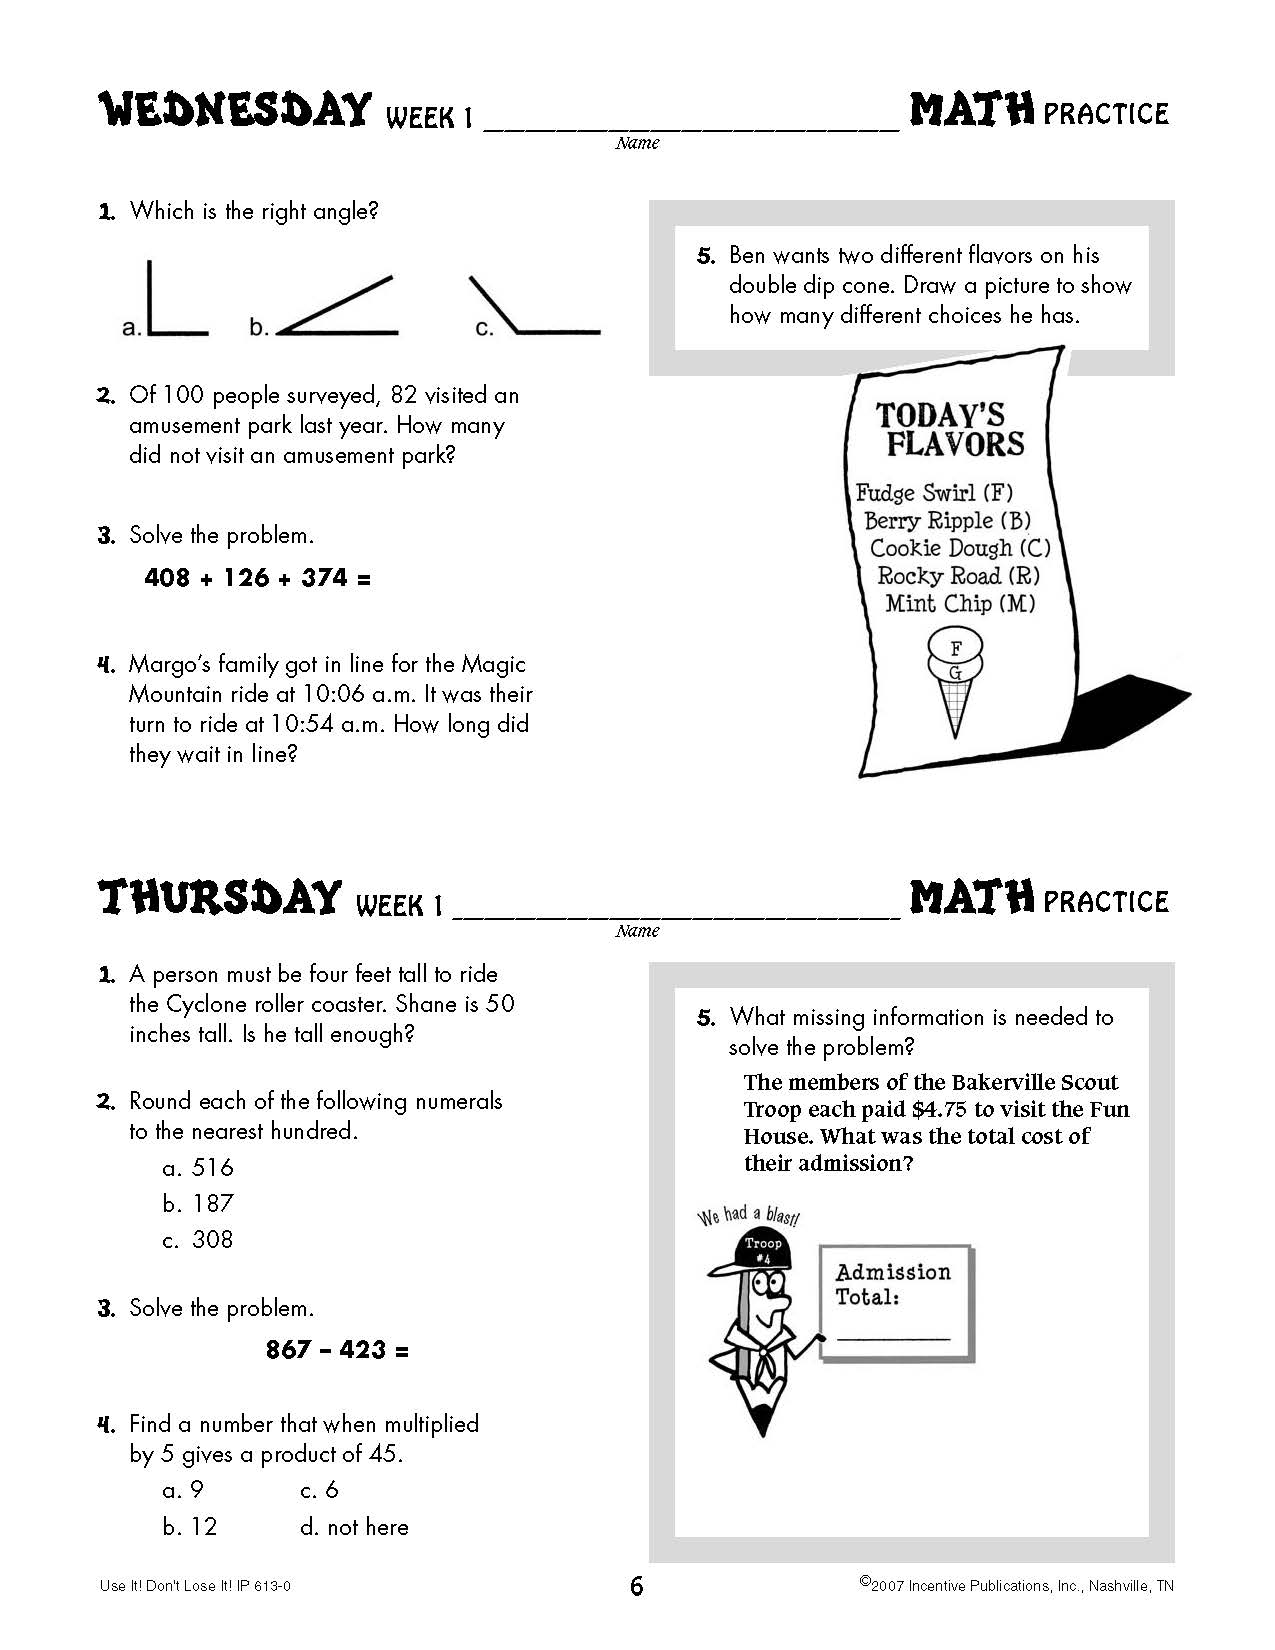 Daily Math Practice 5th Grade: Use It! Don\'t Lose It!   World Book